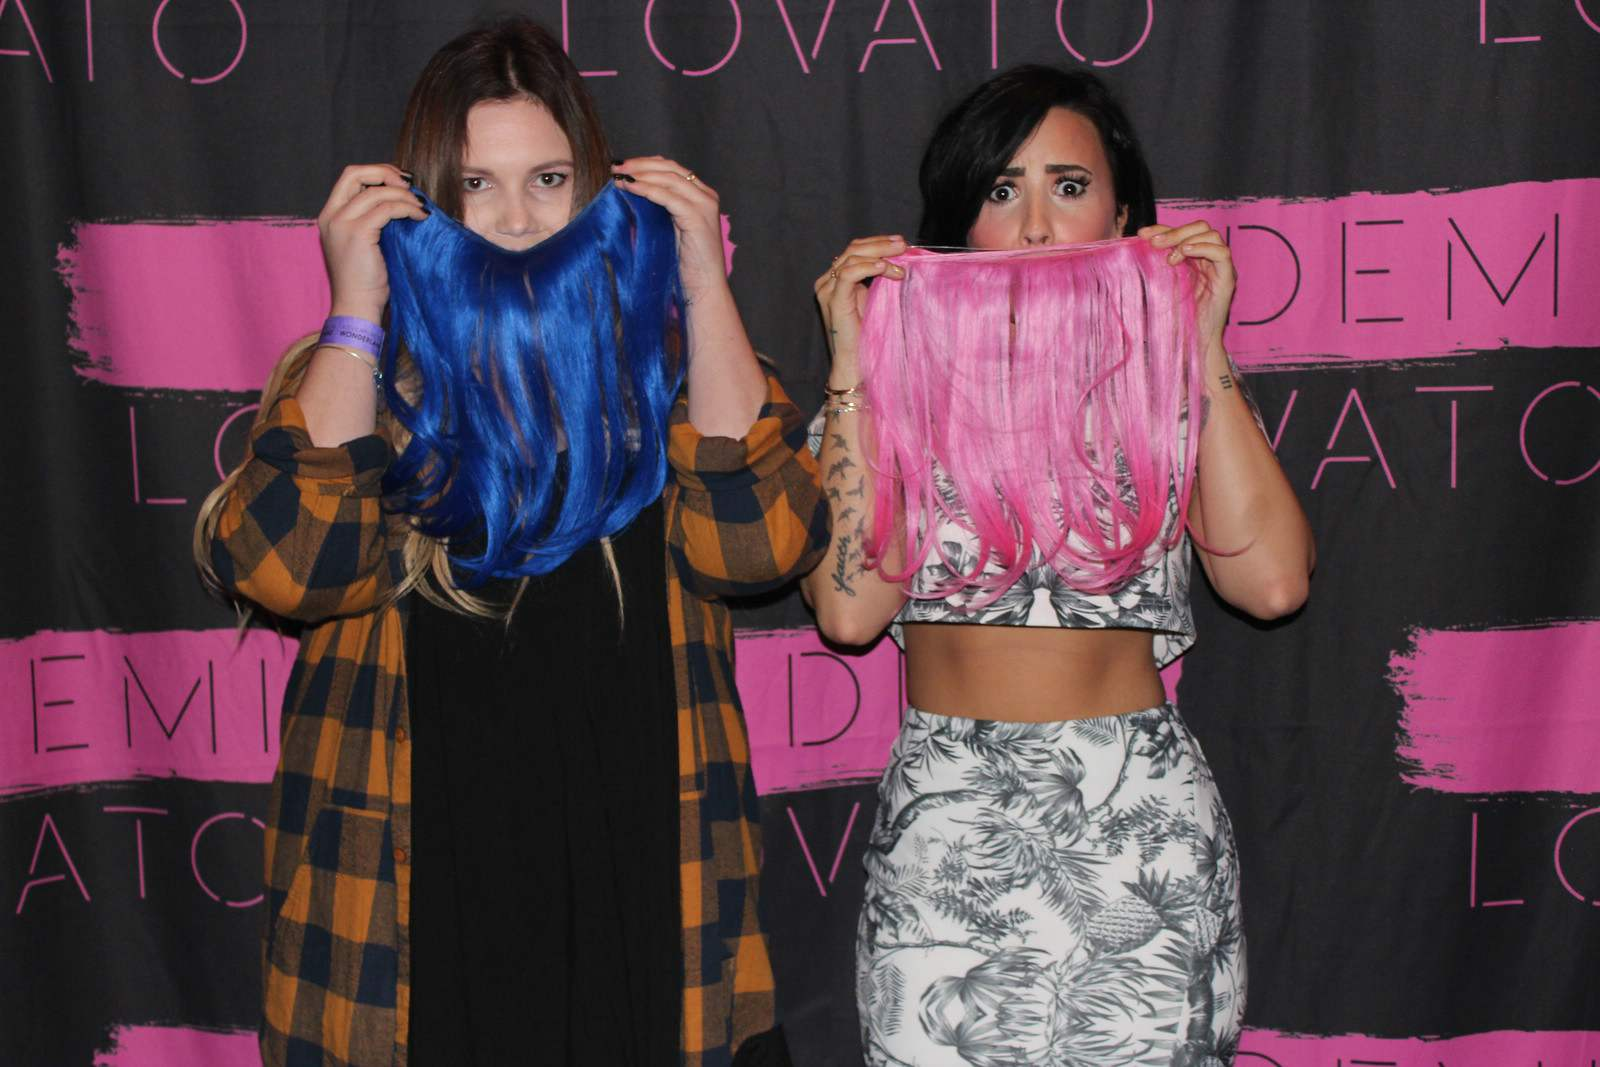 meet and greet demi lovato 2015 leaked